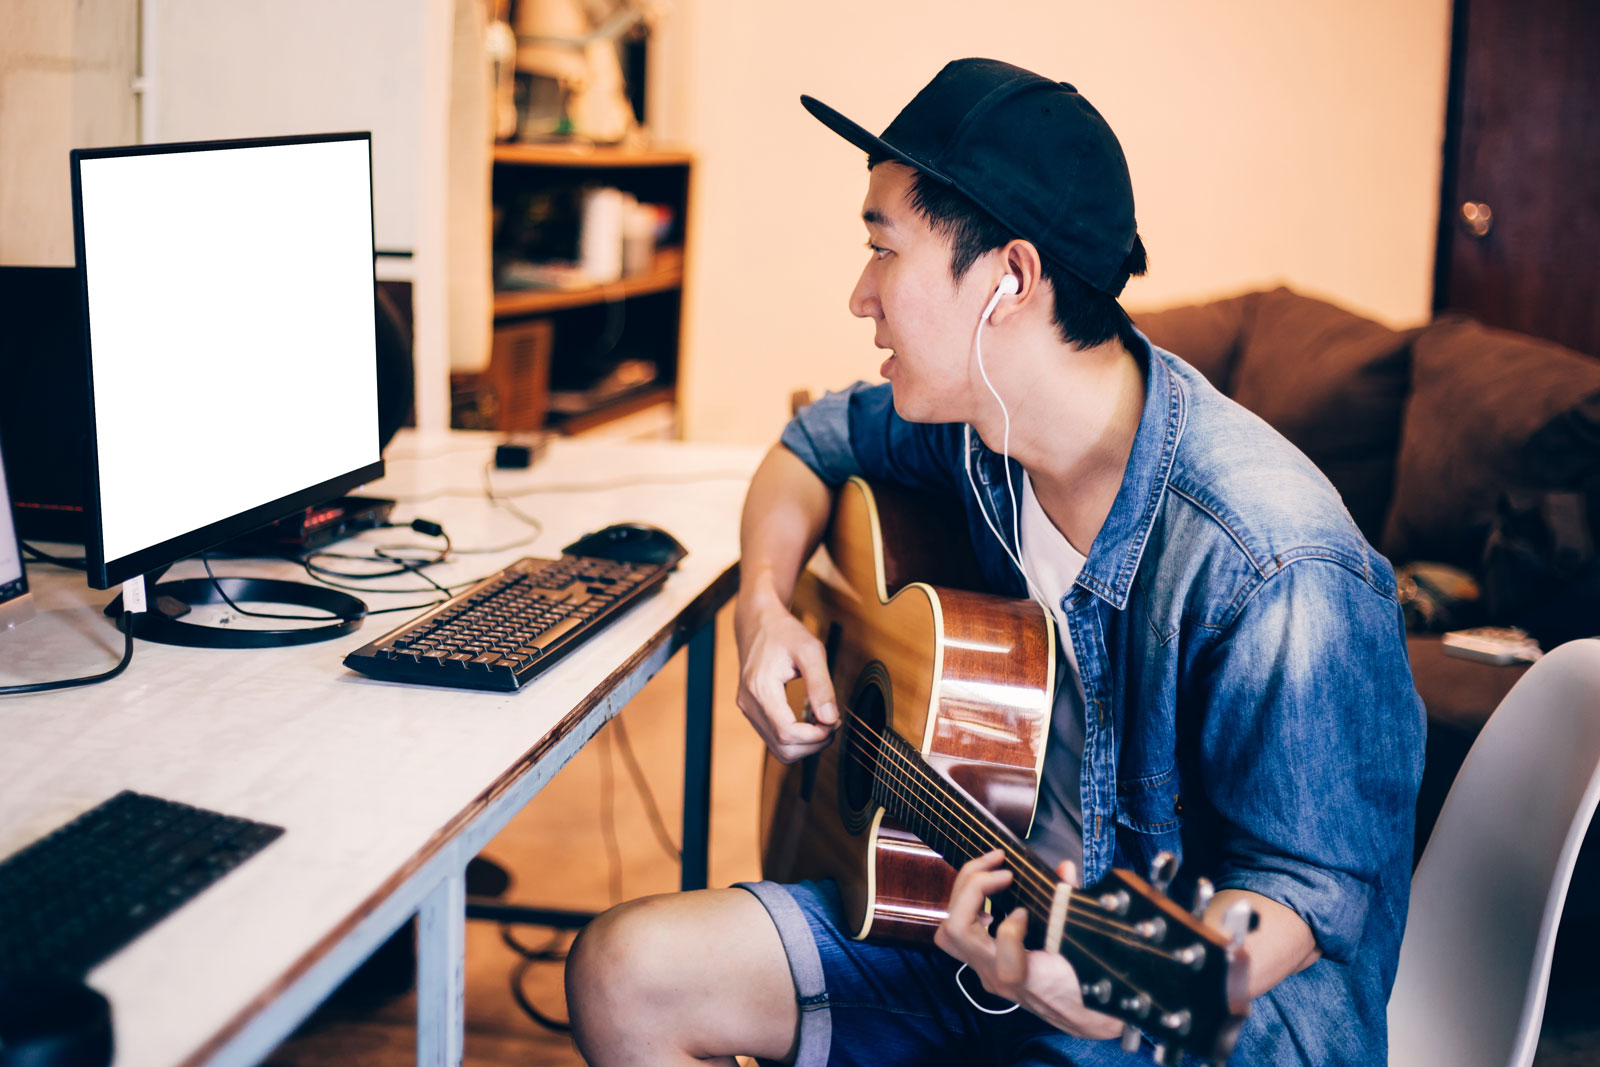 Teen Learning To Play Guitar Online | Top 3 Sites To Help You Easily Learn To Play Guitar Online